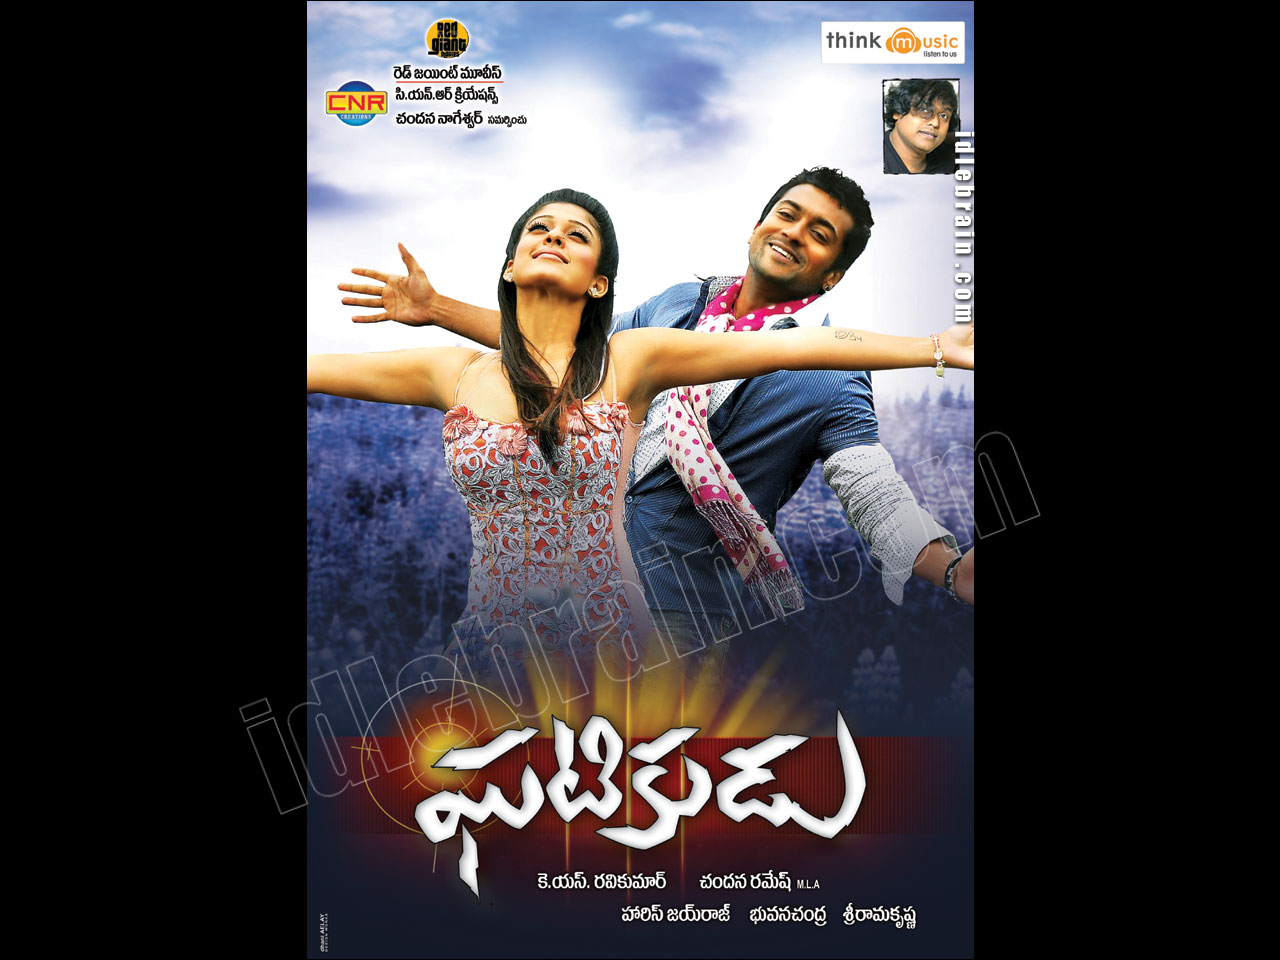 Tamil mp3 movie songs free download